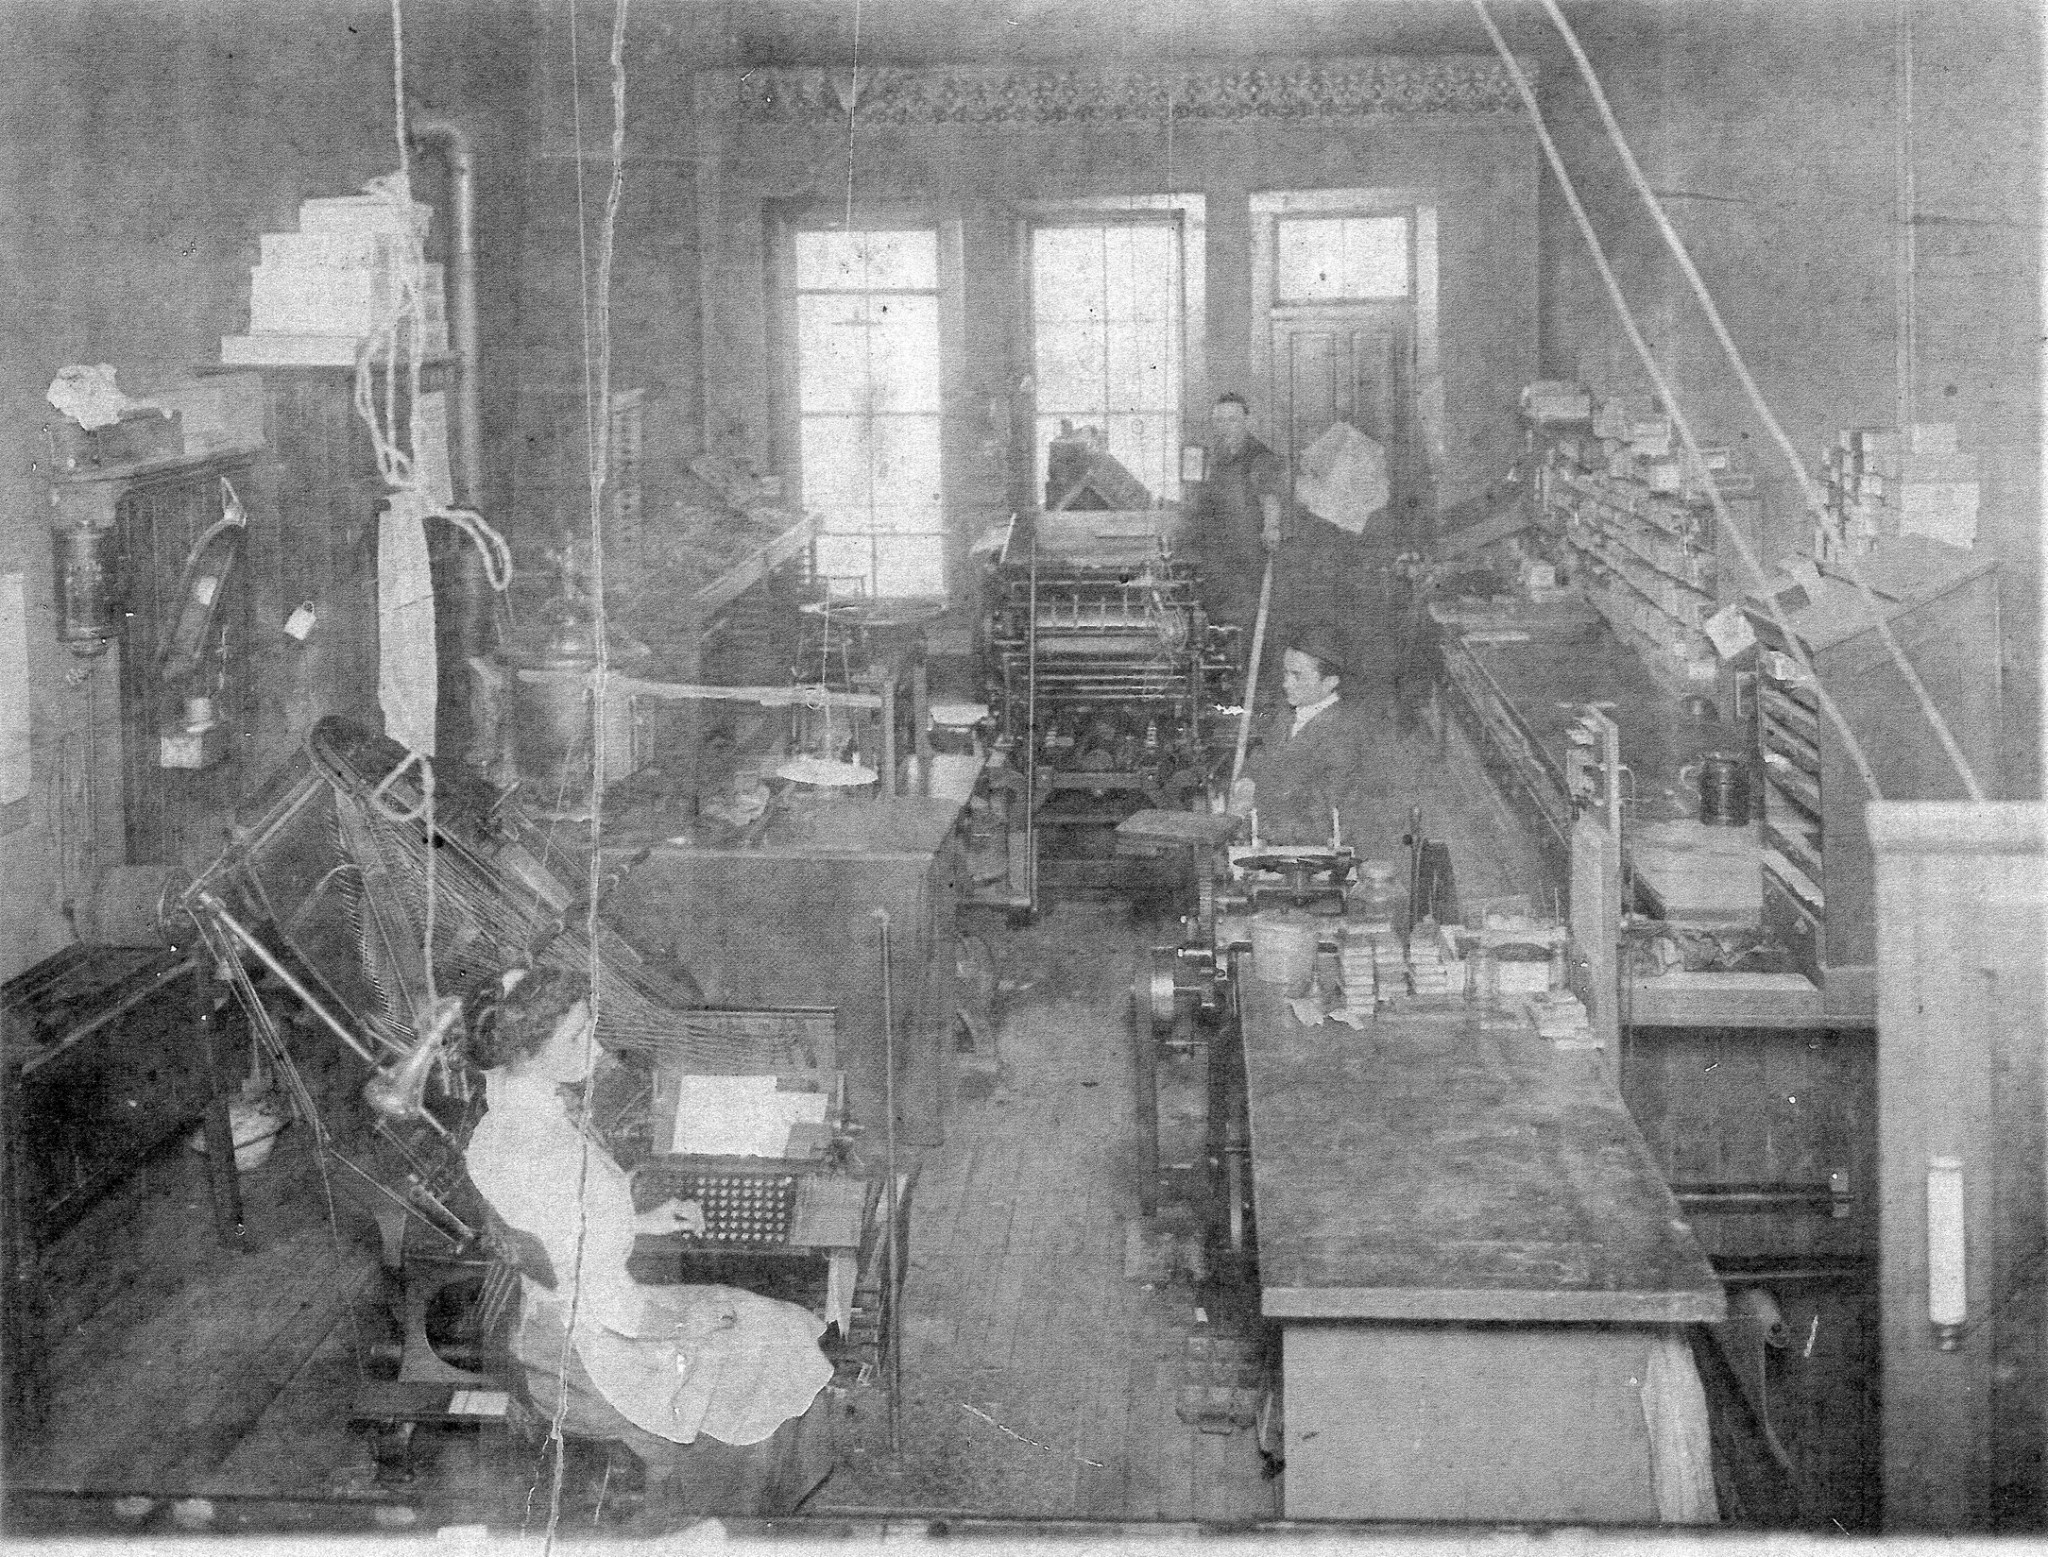 Interior View of Manchester Printing ca 1905